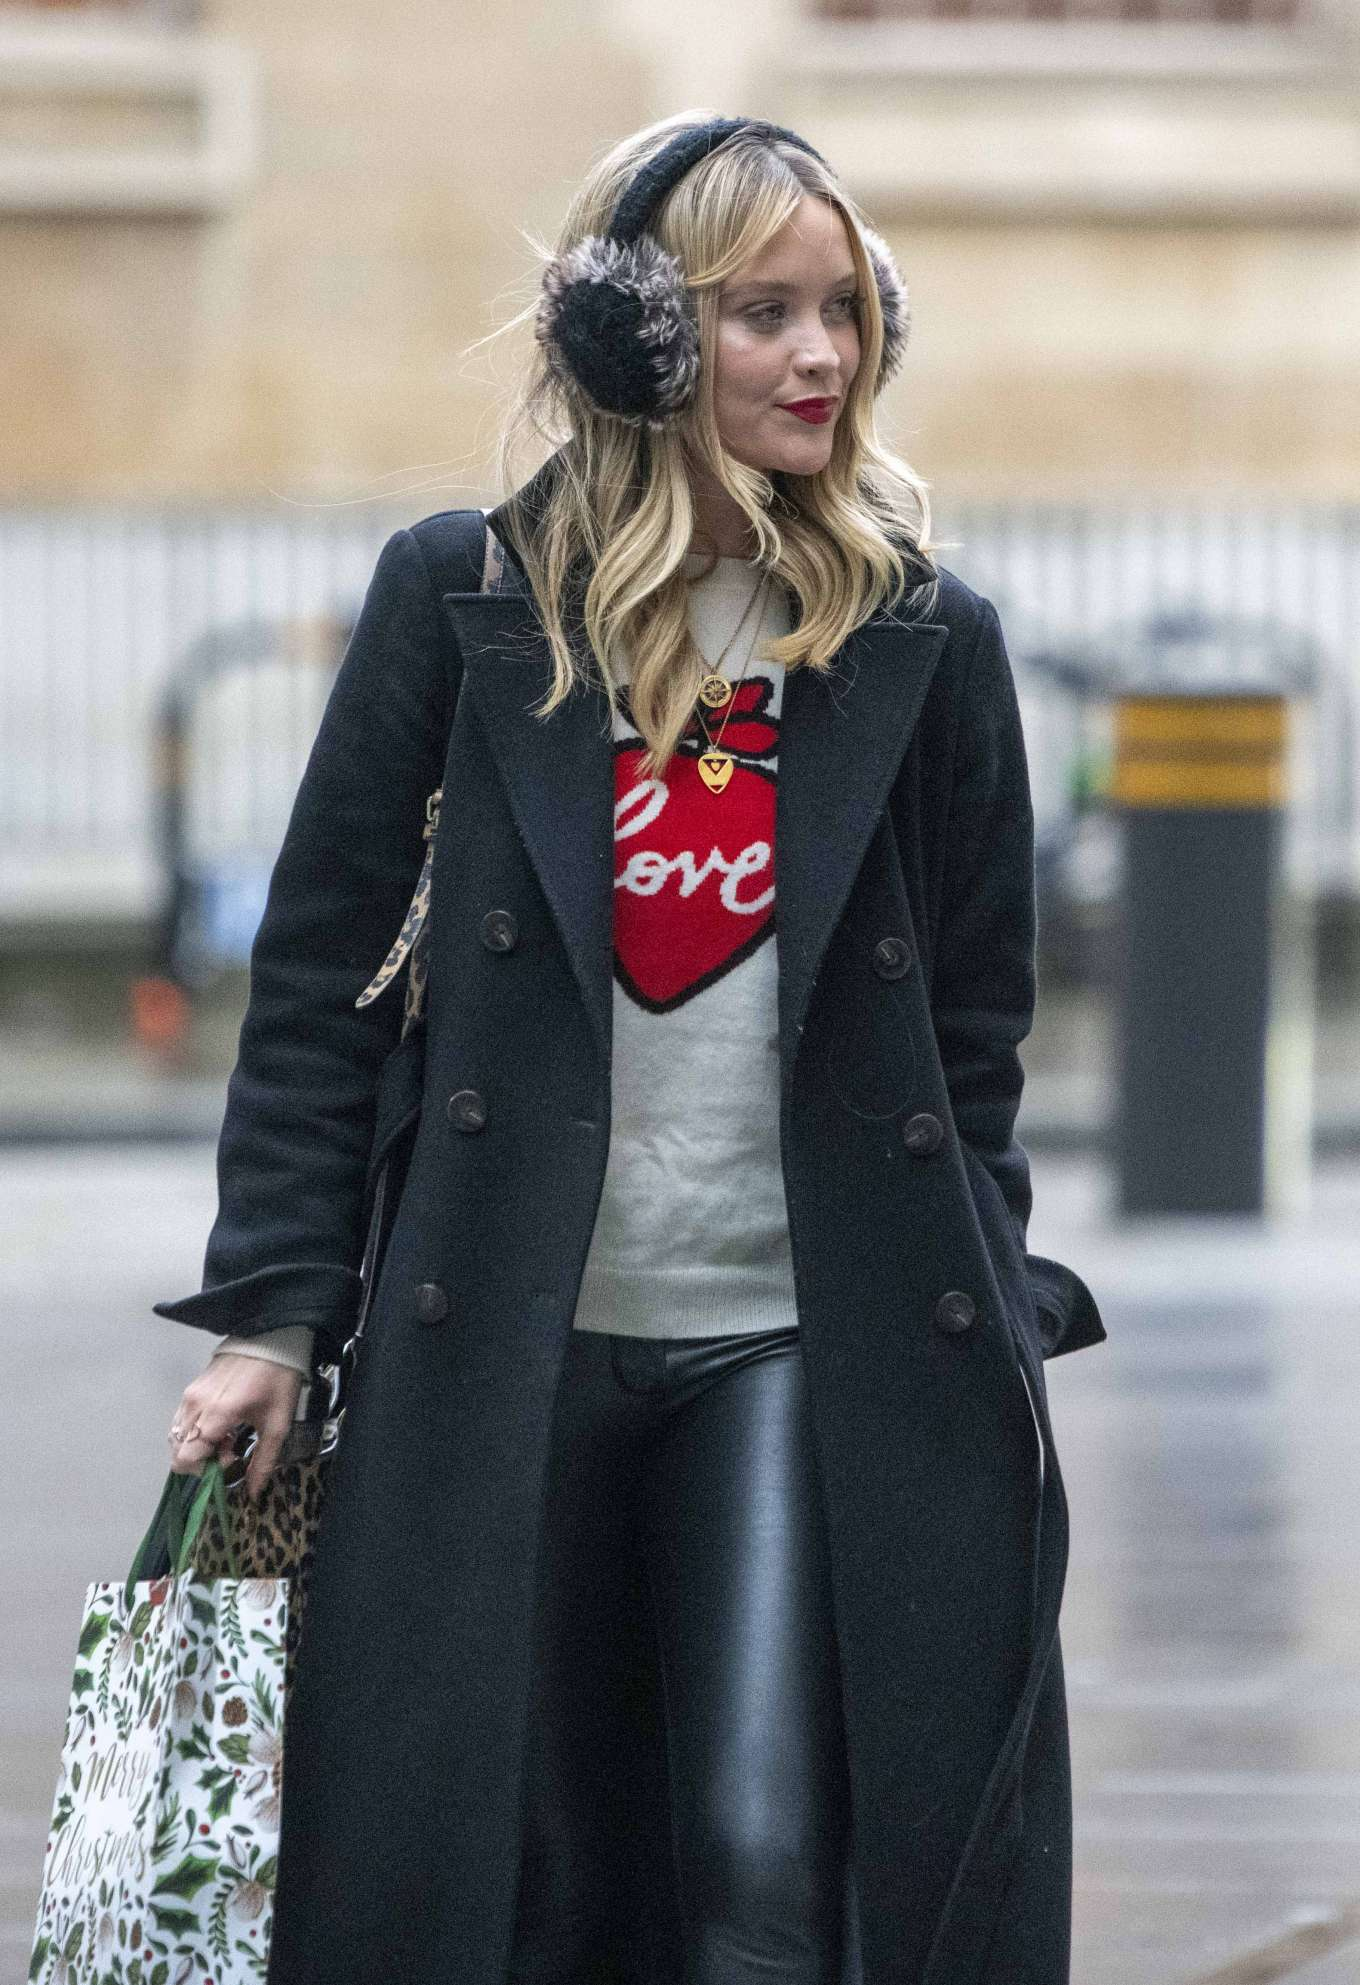 Laura Whitmore - Arrives at BBC Radio 5 Live show in London